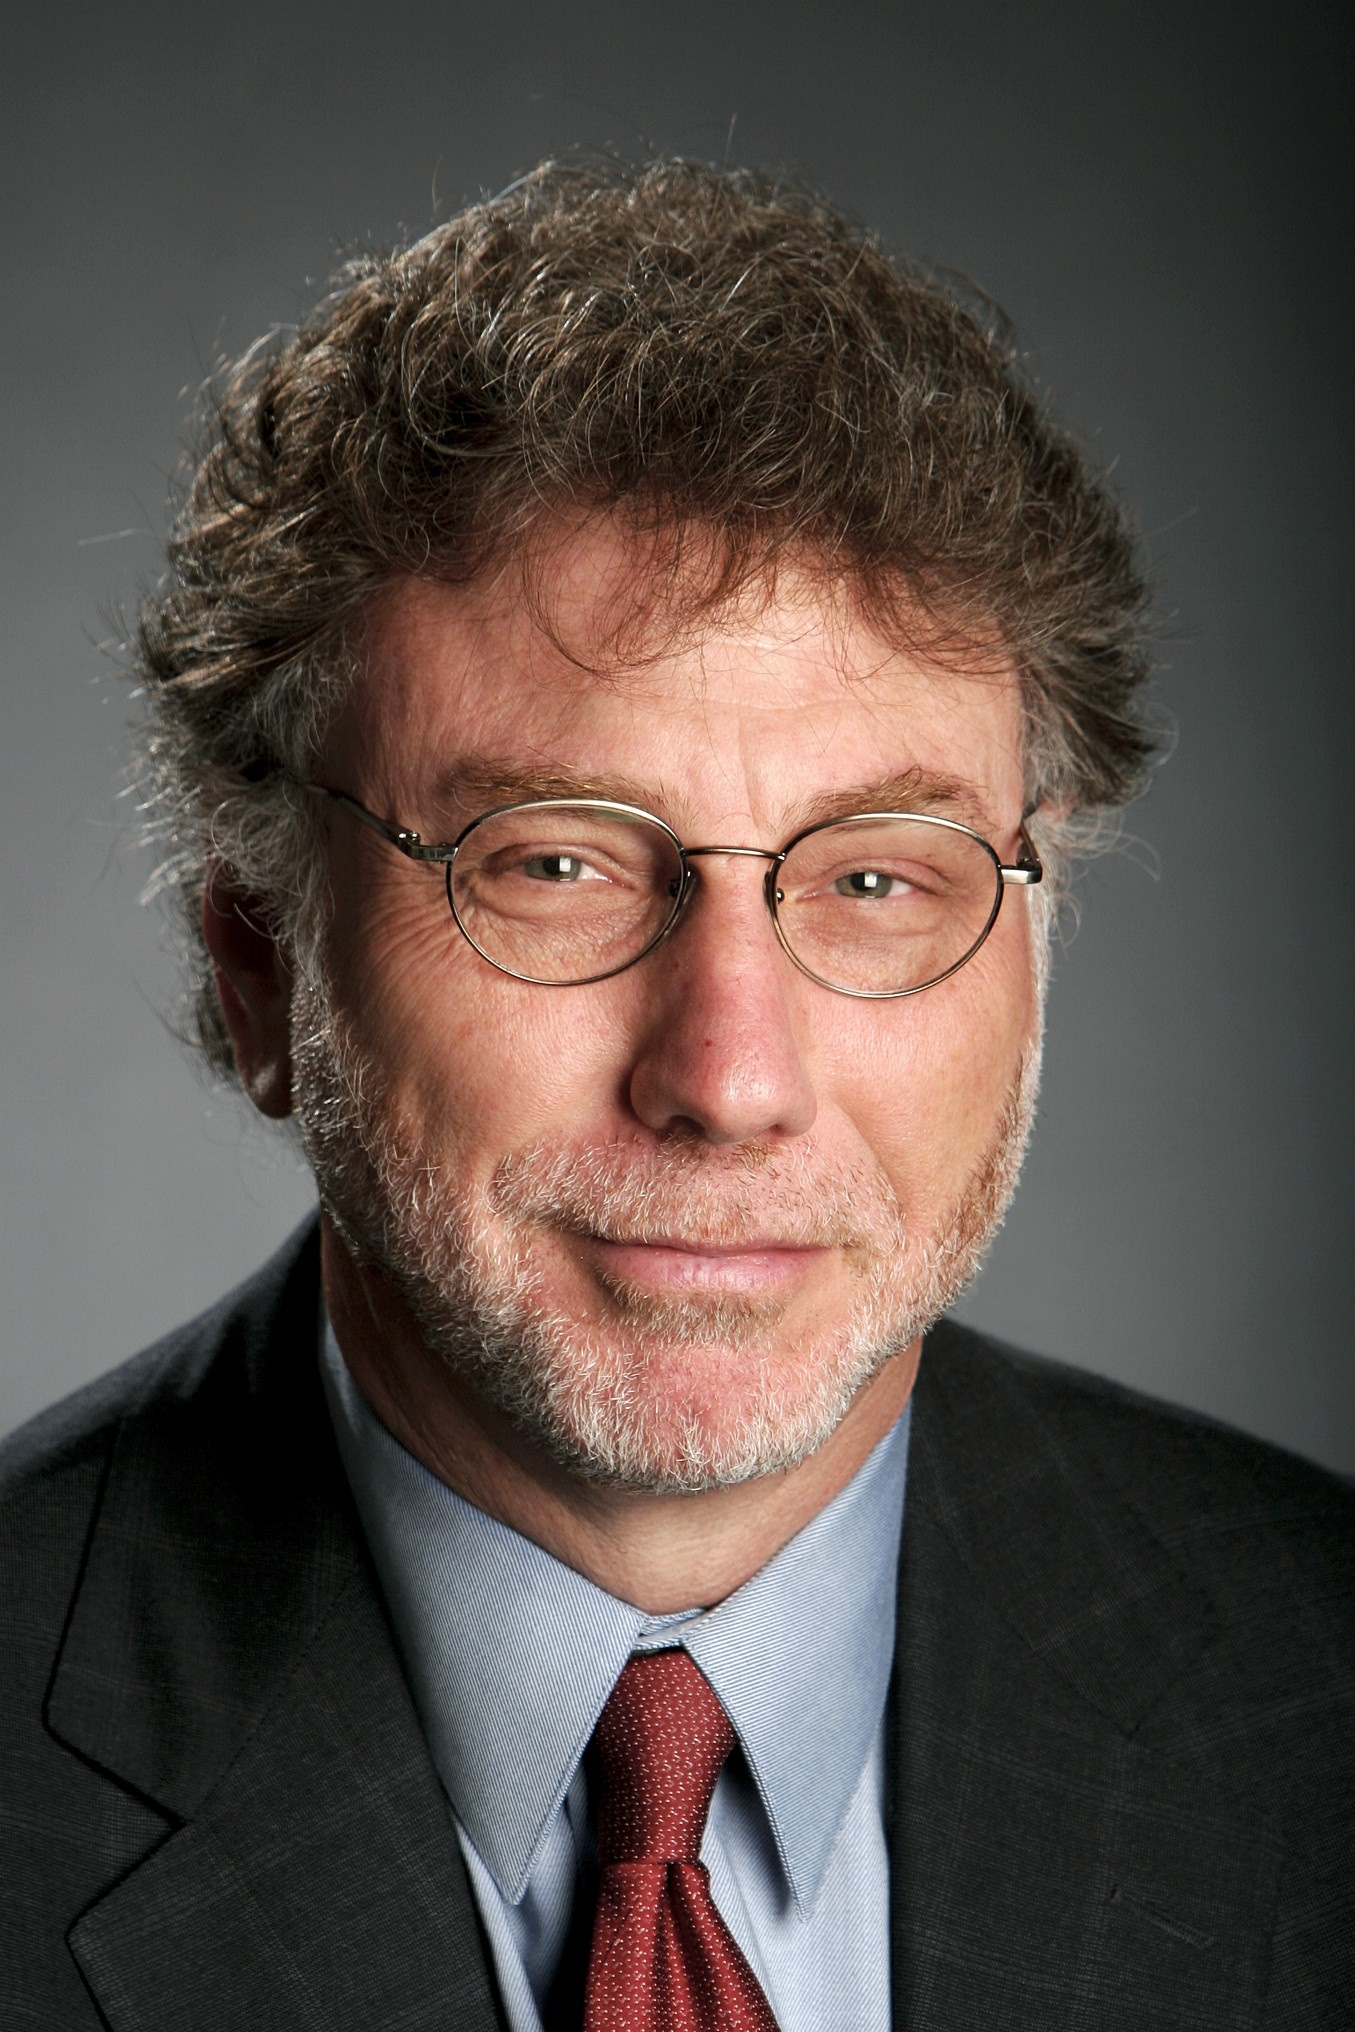 Martin Baron Marty Baron warns press against fear and timidity Media